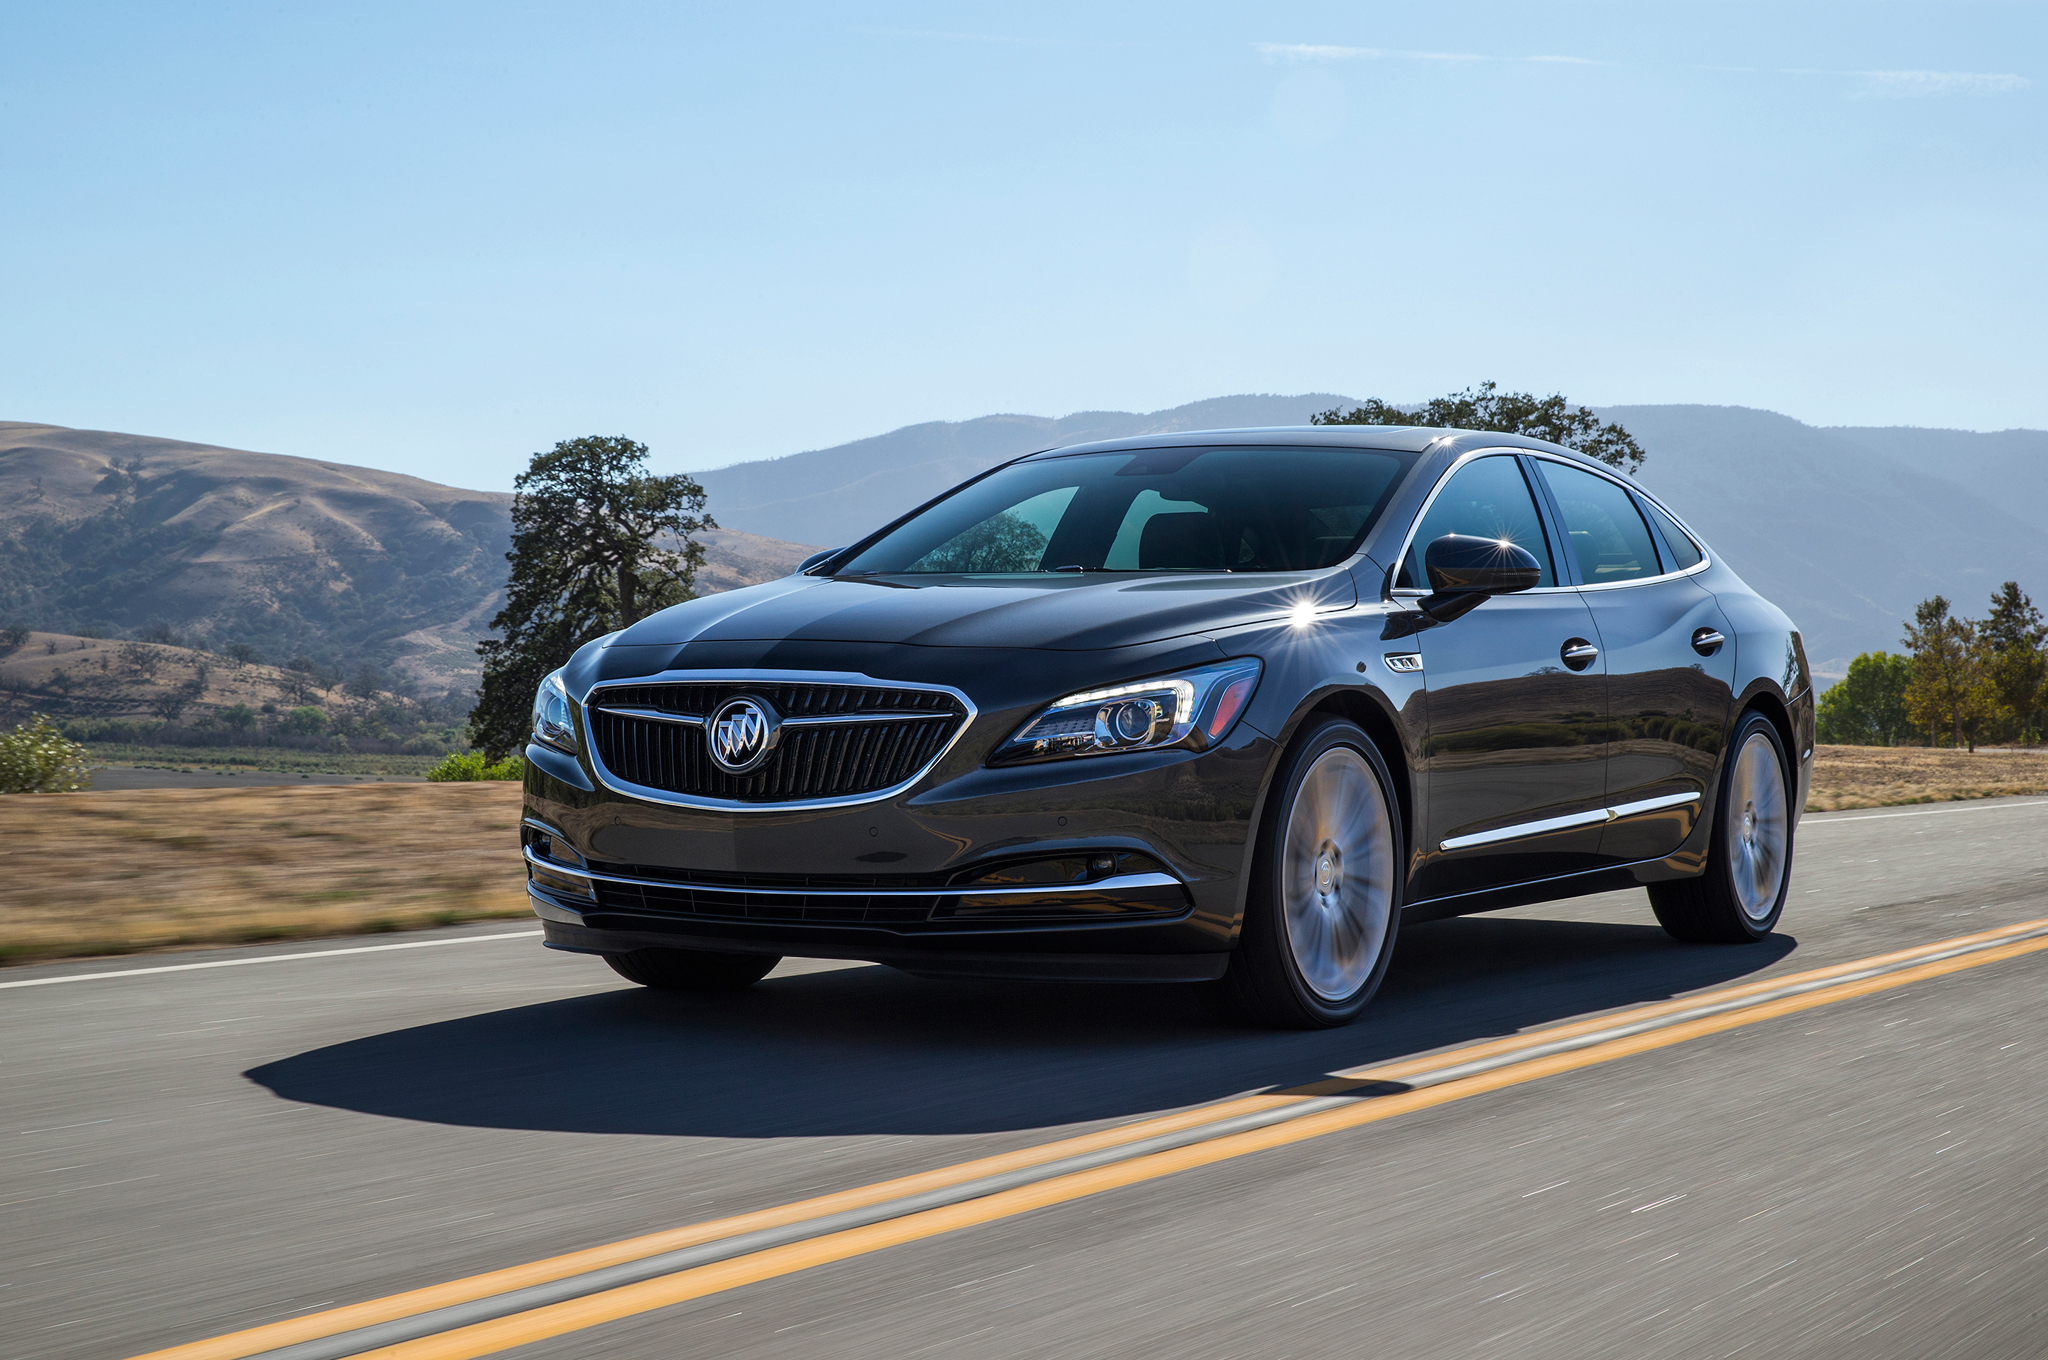 2017-Buick-LaCrosse-front-three-quarter-in-motion